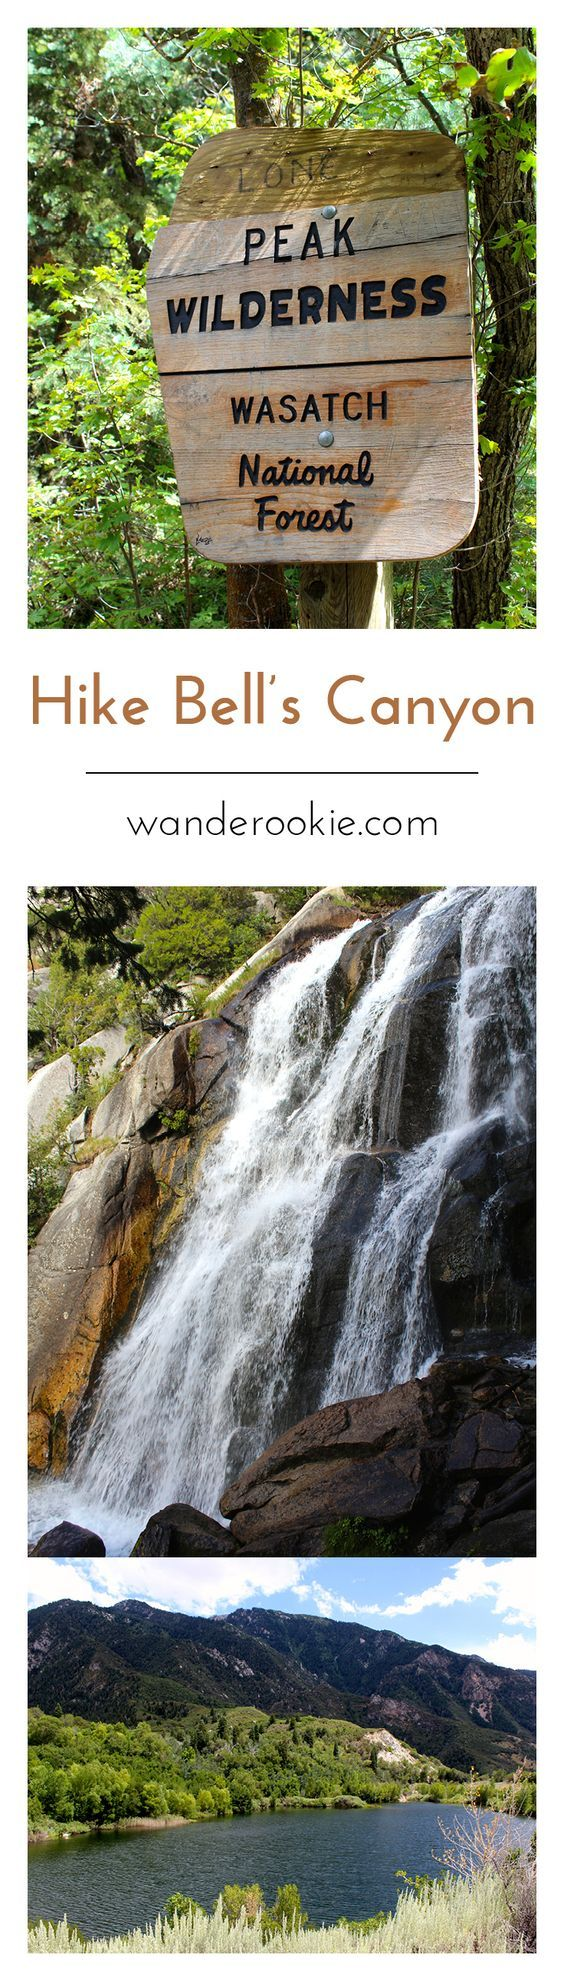 A gorgeous Utah hike near Salt Lake City! This trail leads to a reservoir AND a waterfall! The reservoir trail is kid friendly and the waterfall trail is a bit more strenuous.